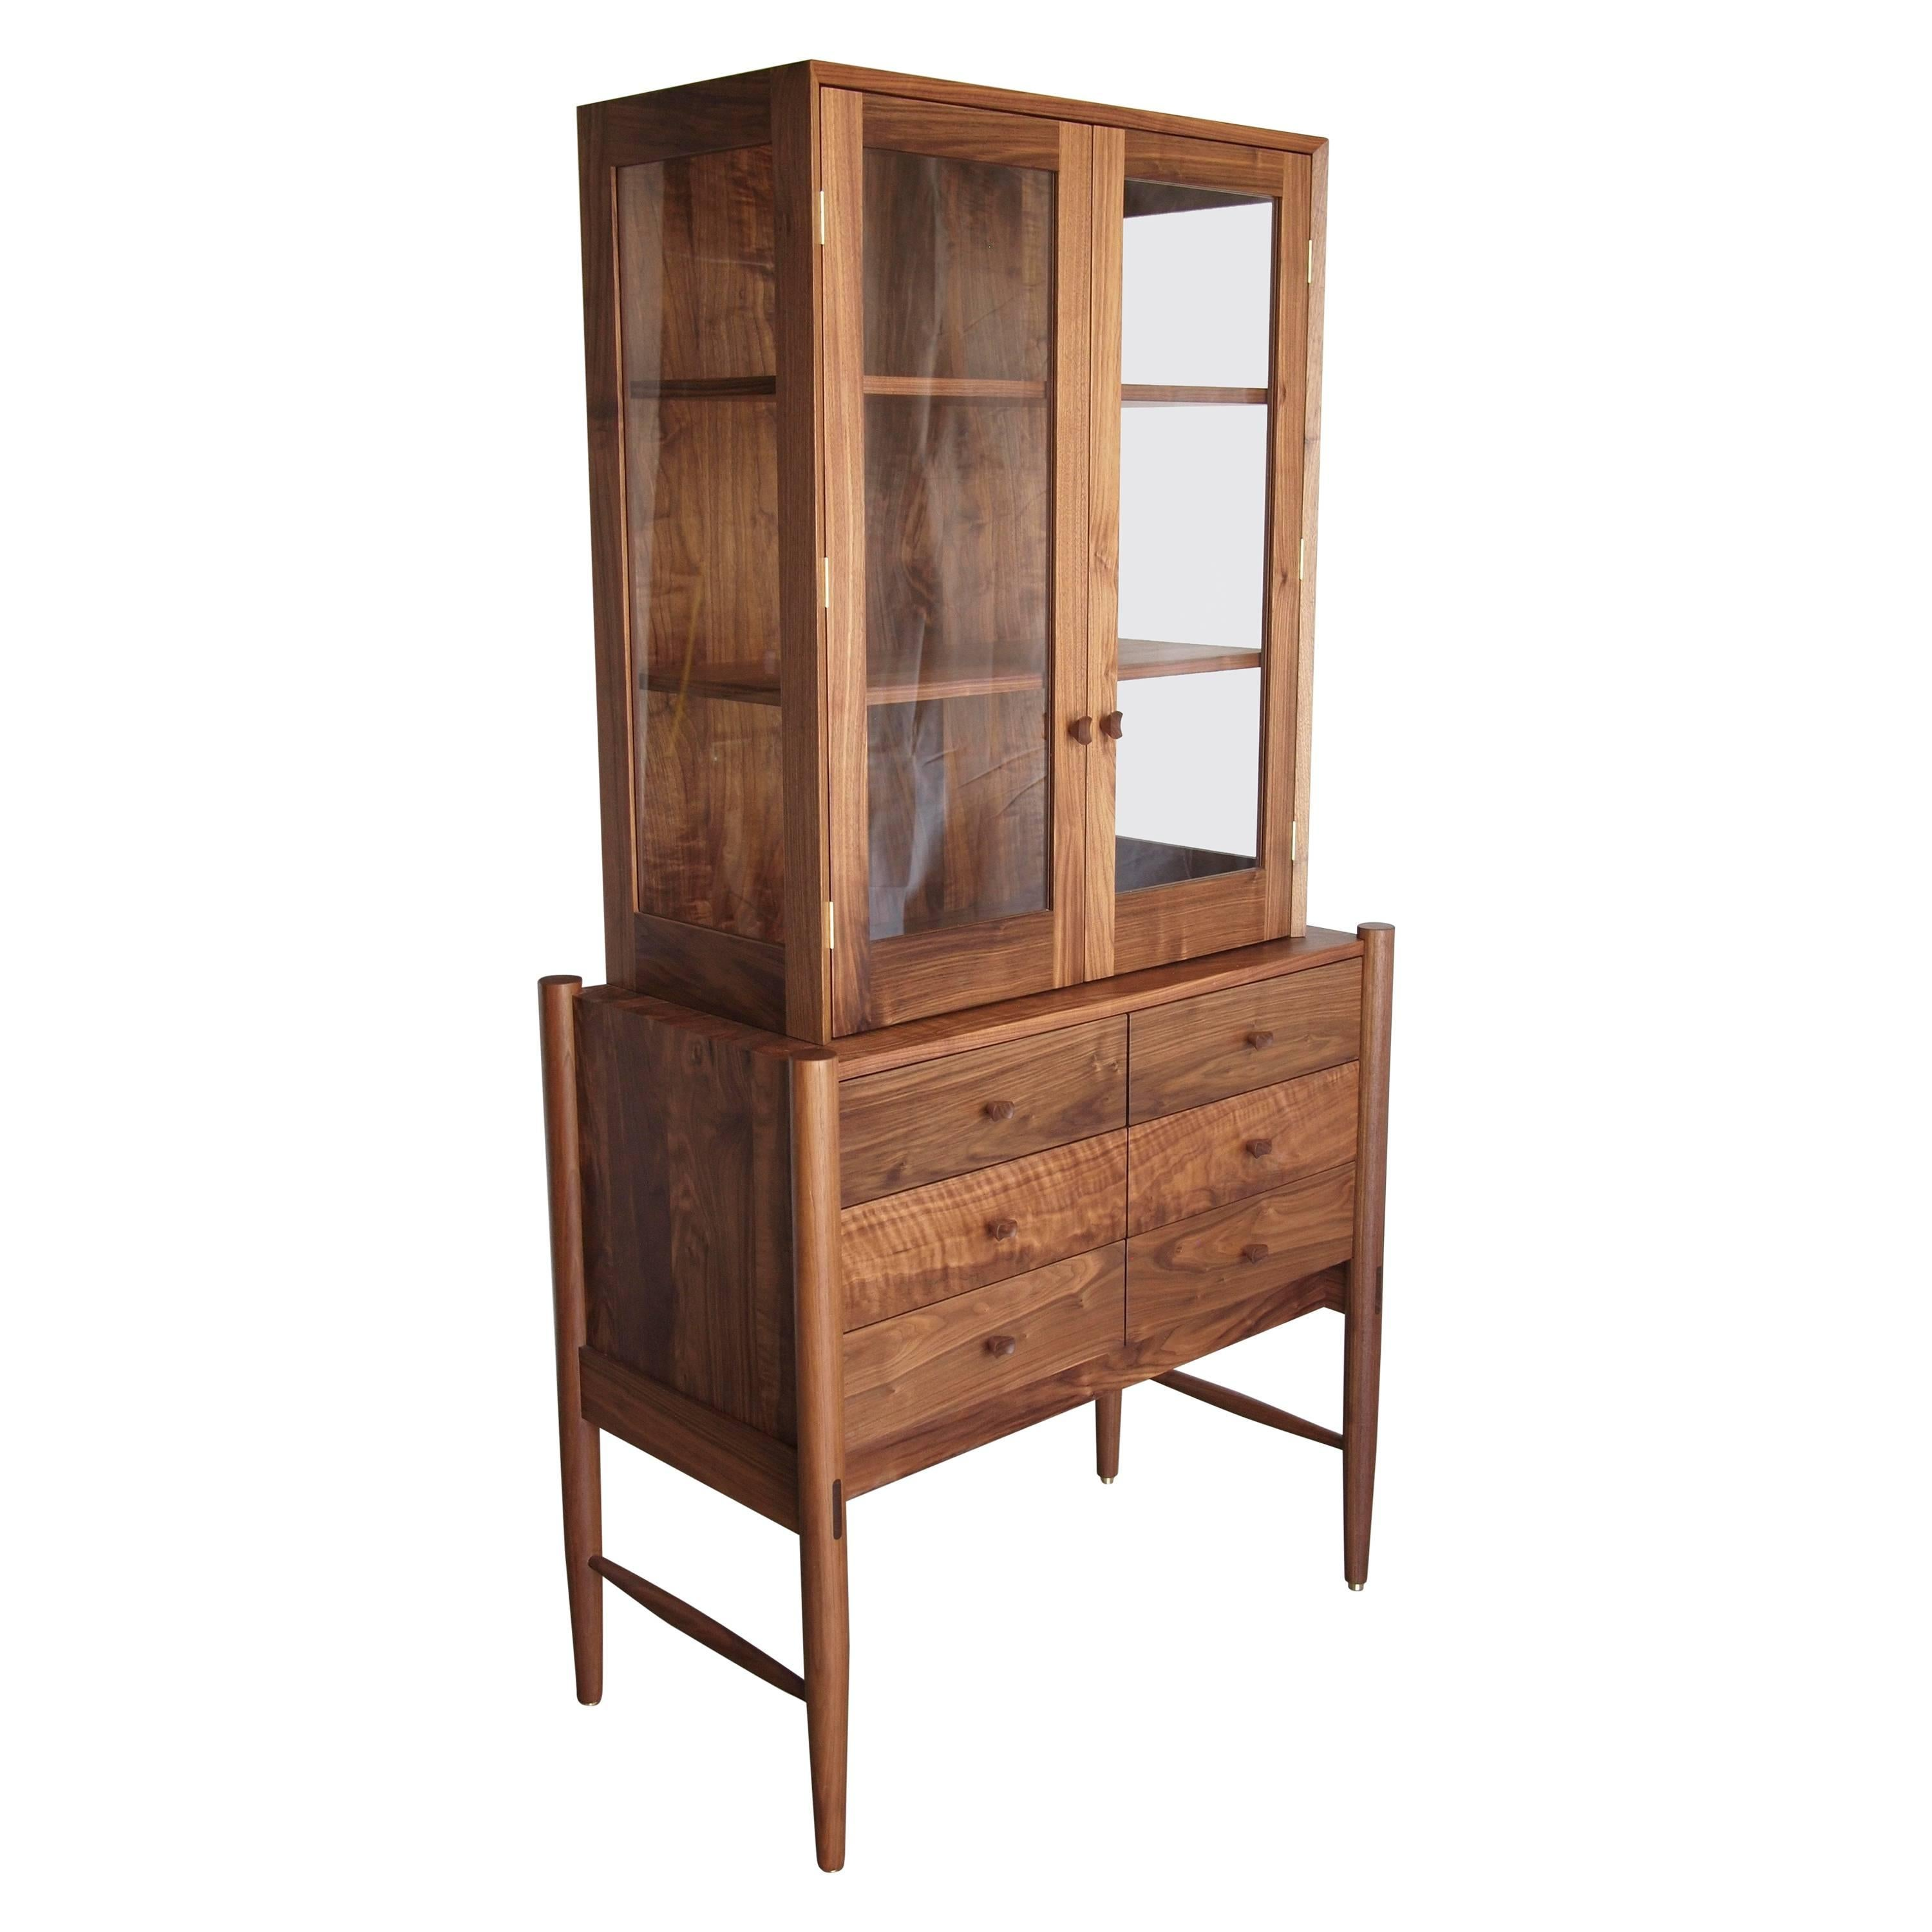 Curiosity Cabinet by Phloem Studio in Walnut For Sale at 1stdibs